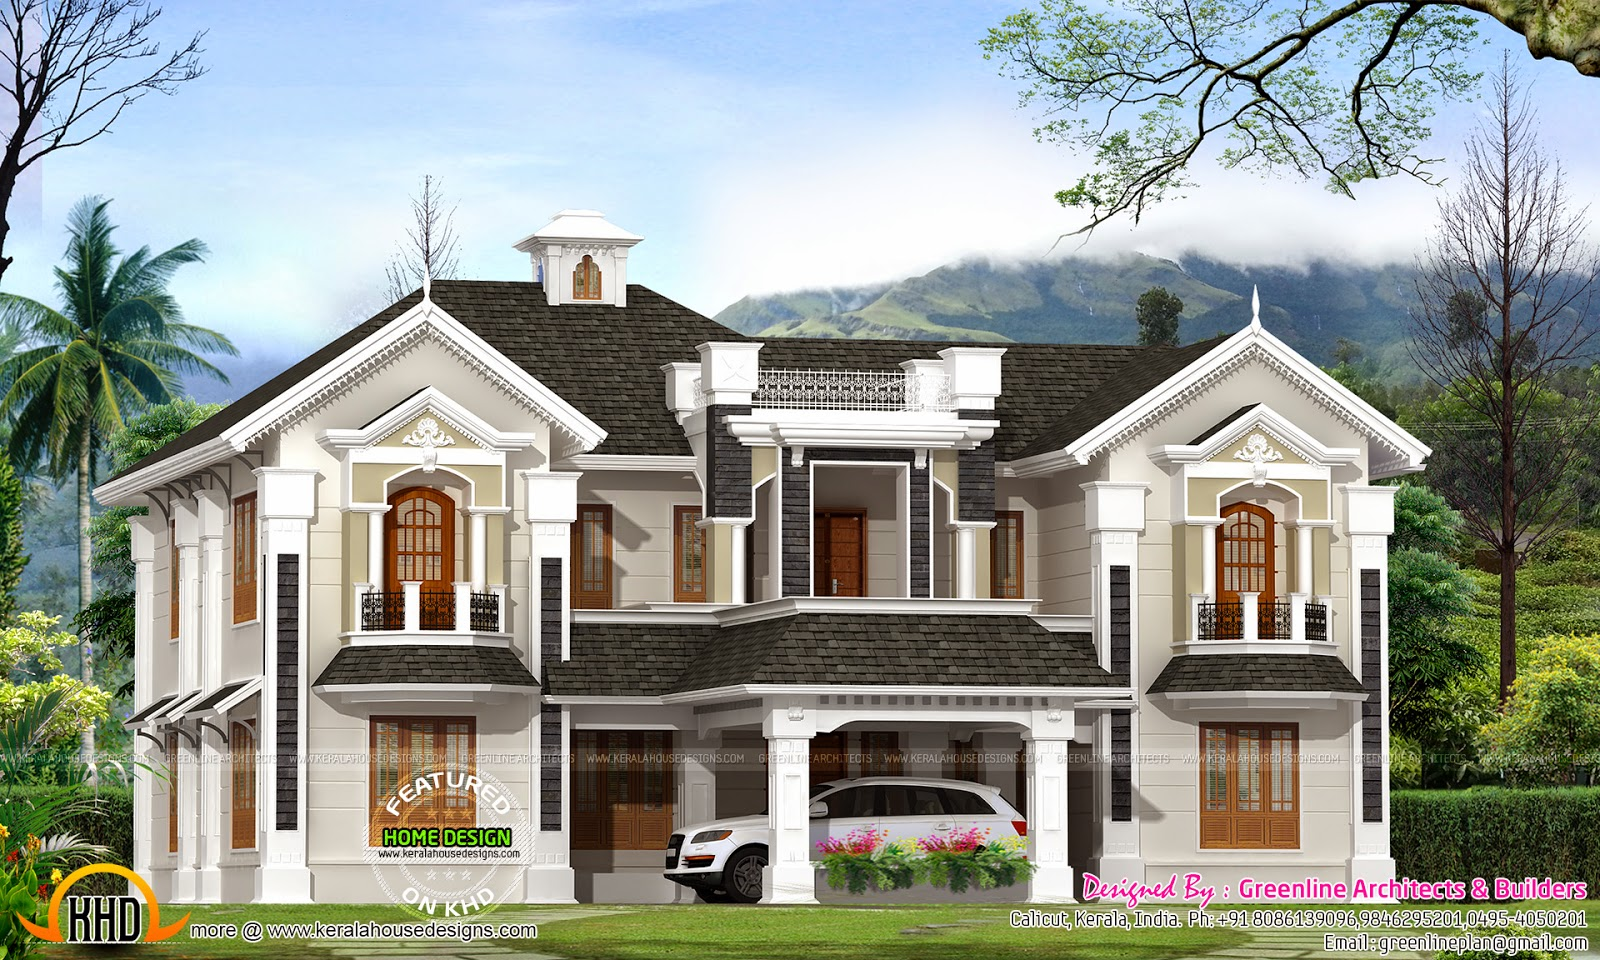 Colonial style house in Kerala - Kerala home design and ...